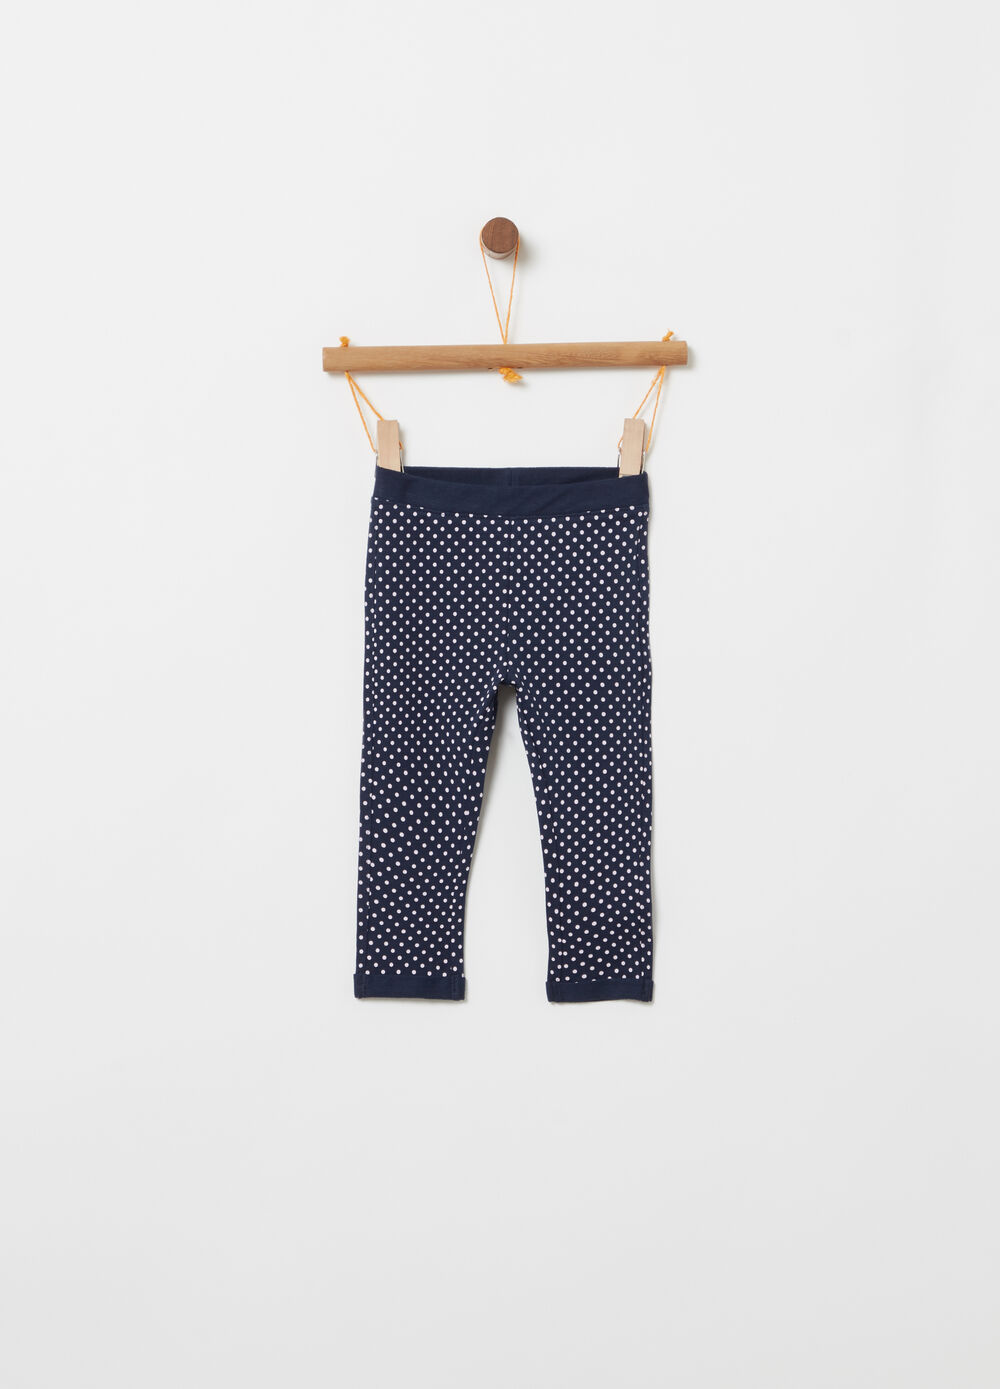 Pantaloni in felpa stretch fantasia a pois